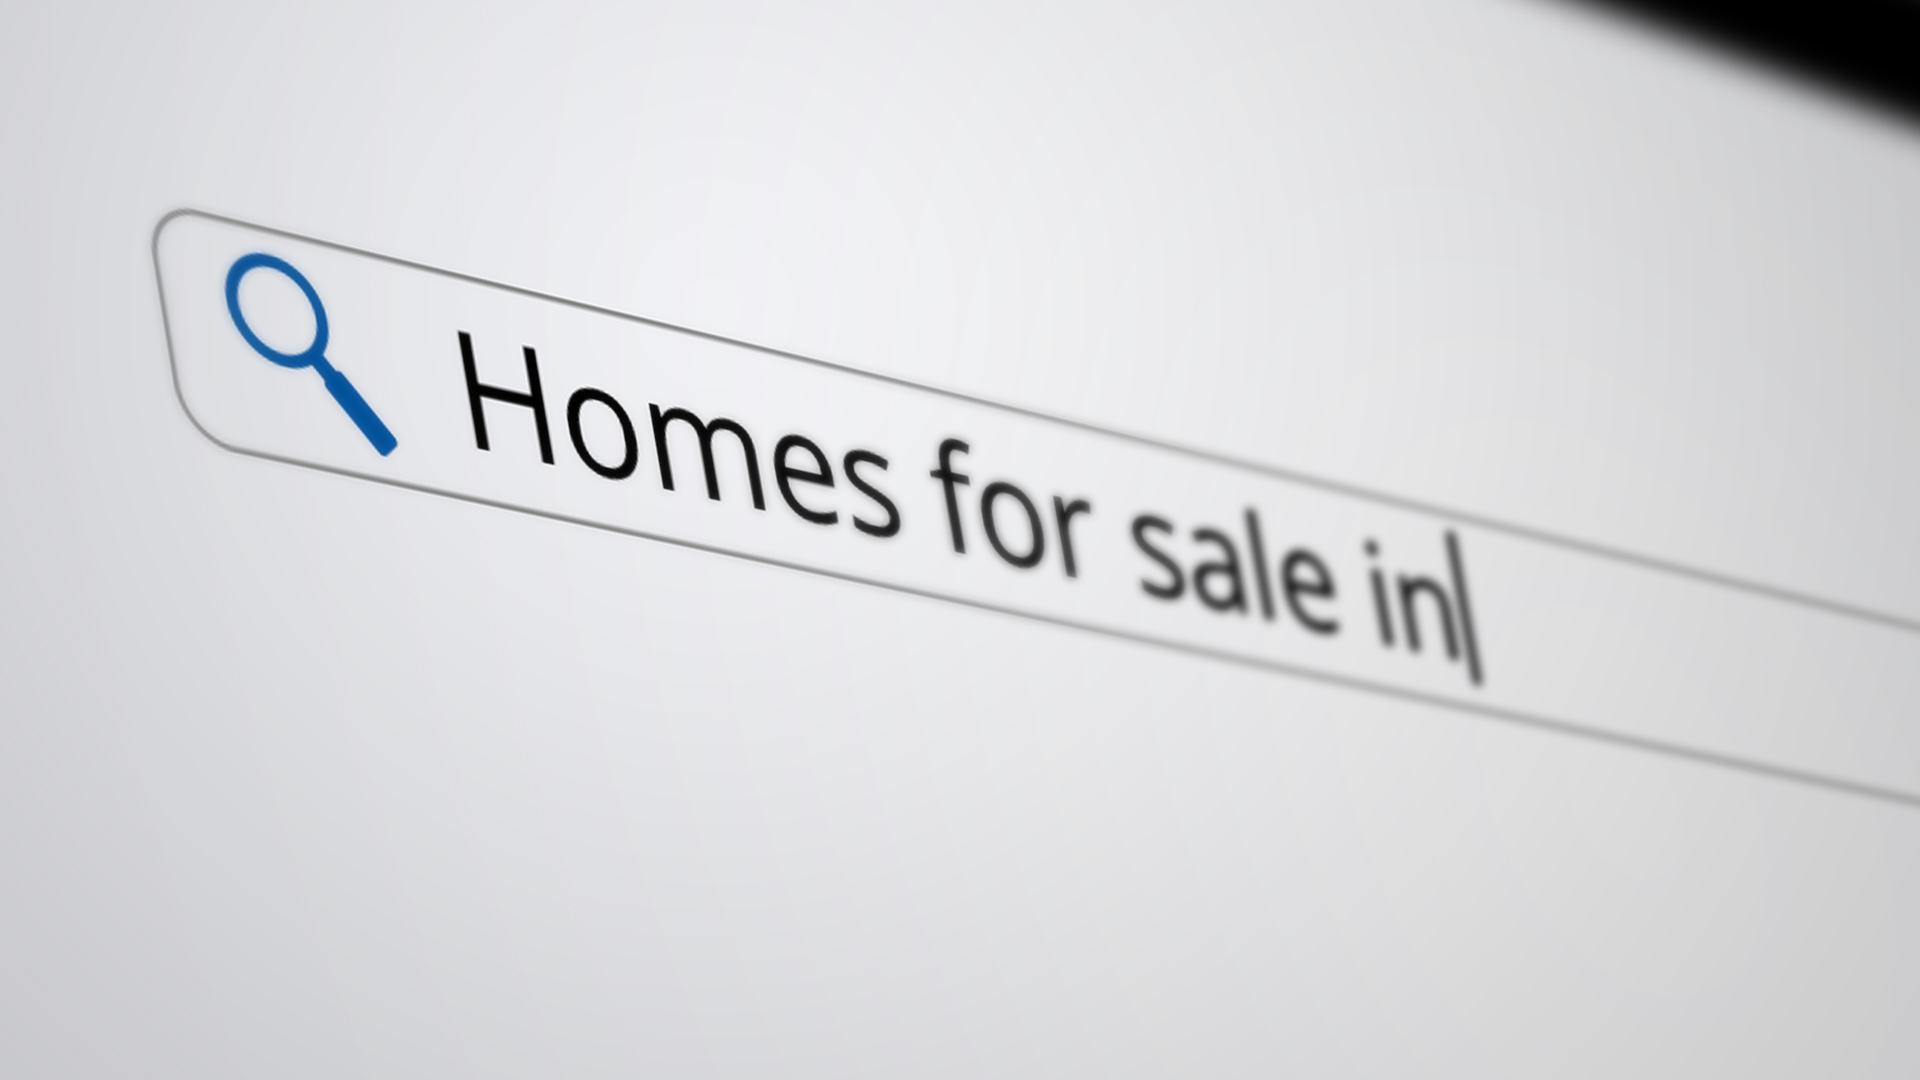 SEO for Real Estate & Agents – Homes.com